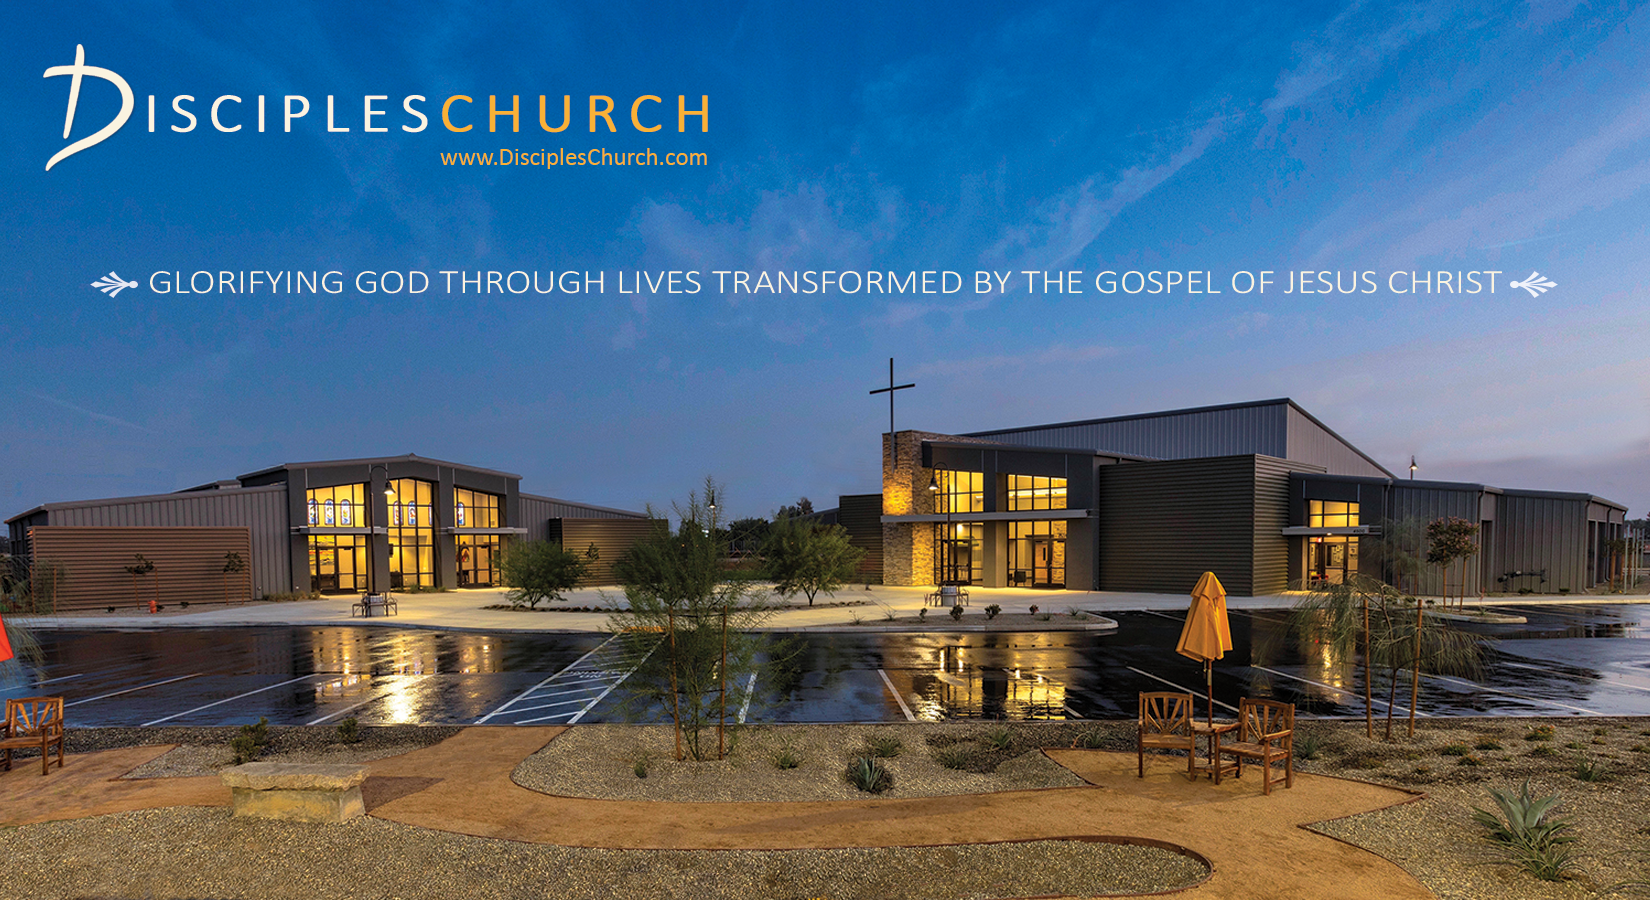 Disciples Church New Campus 2018